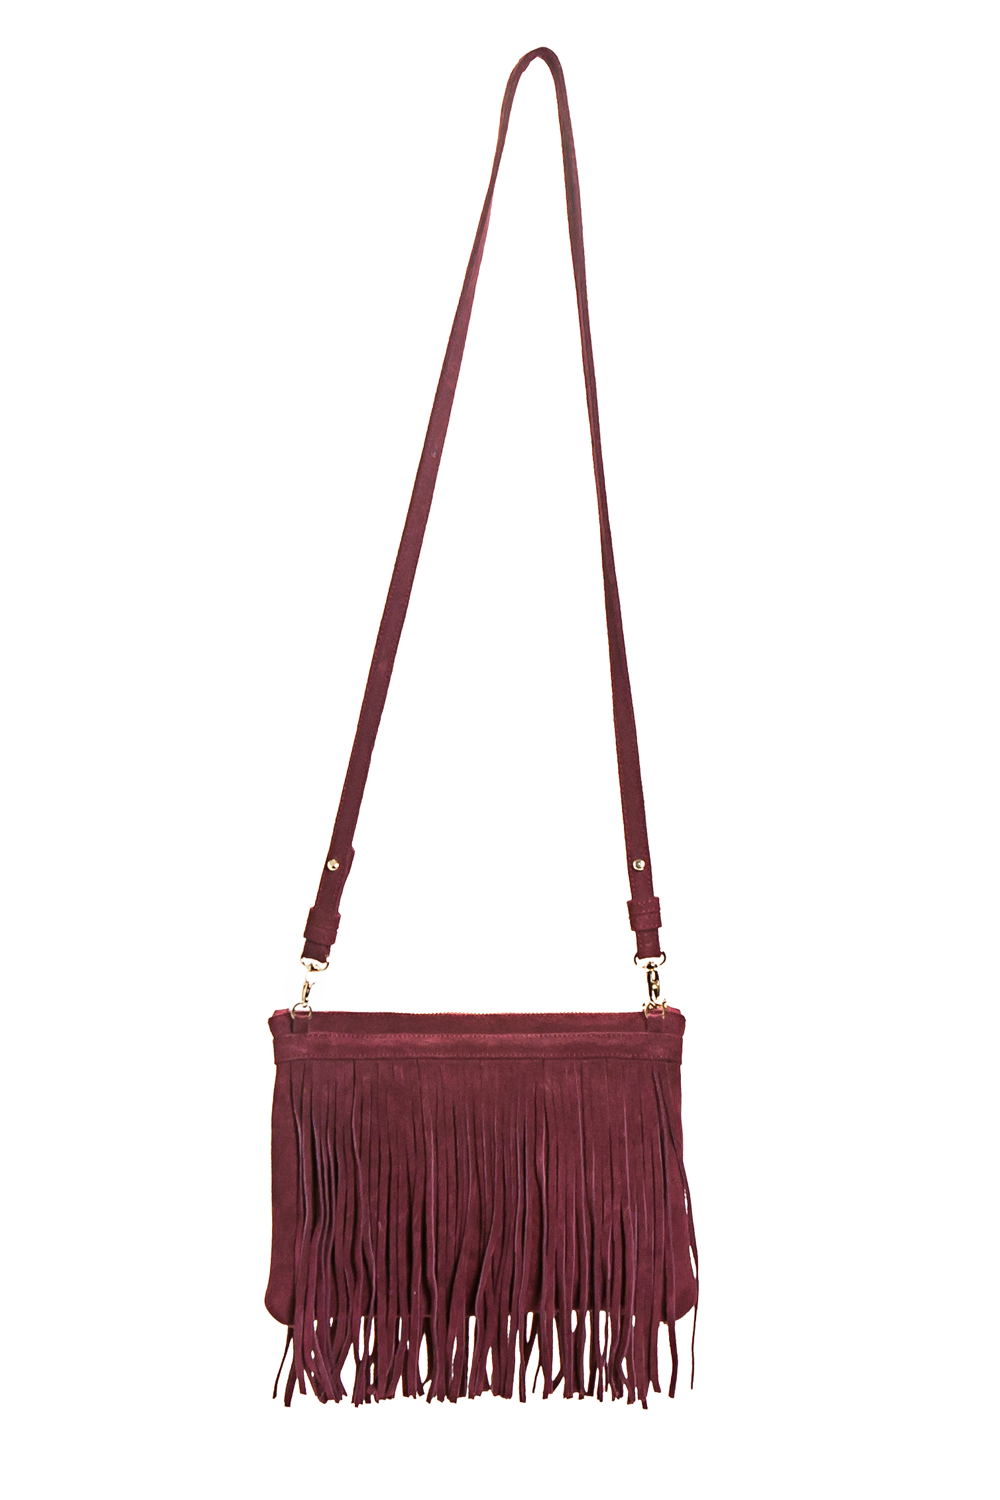 Mel Boteri | 'Mini Taylea' Burgundy Suede Fringed Bag | Back View